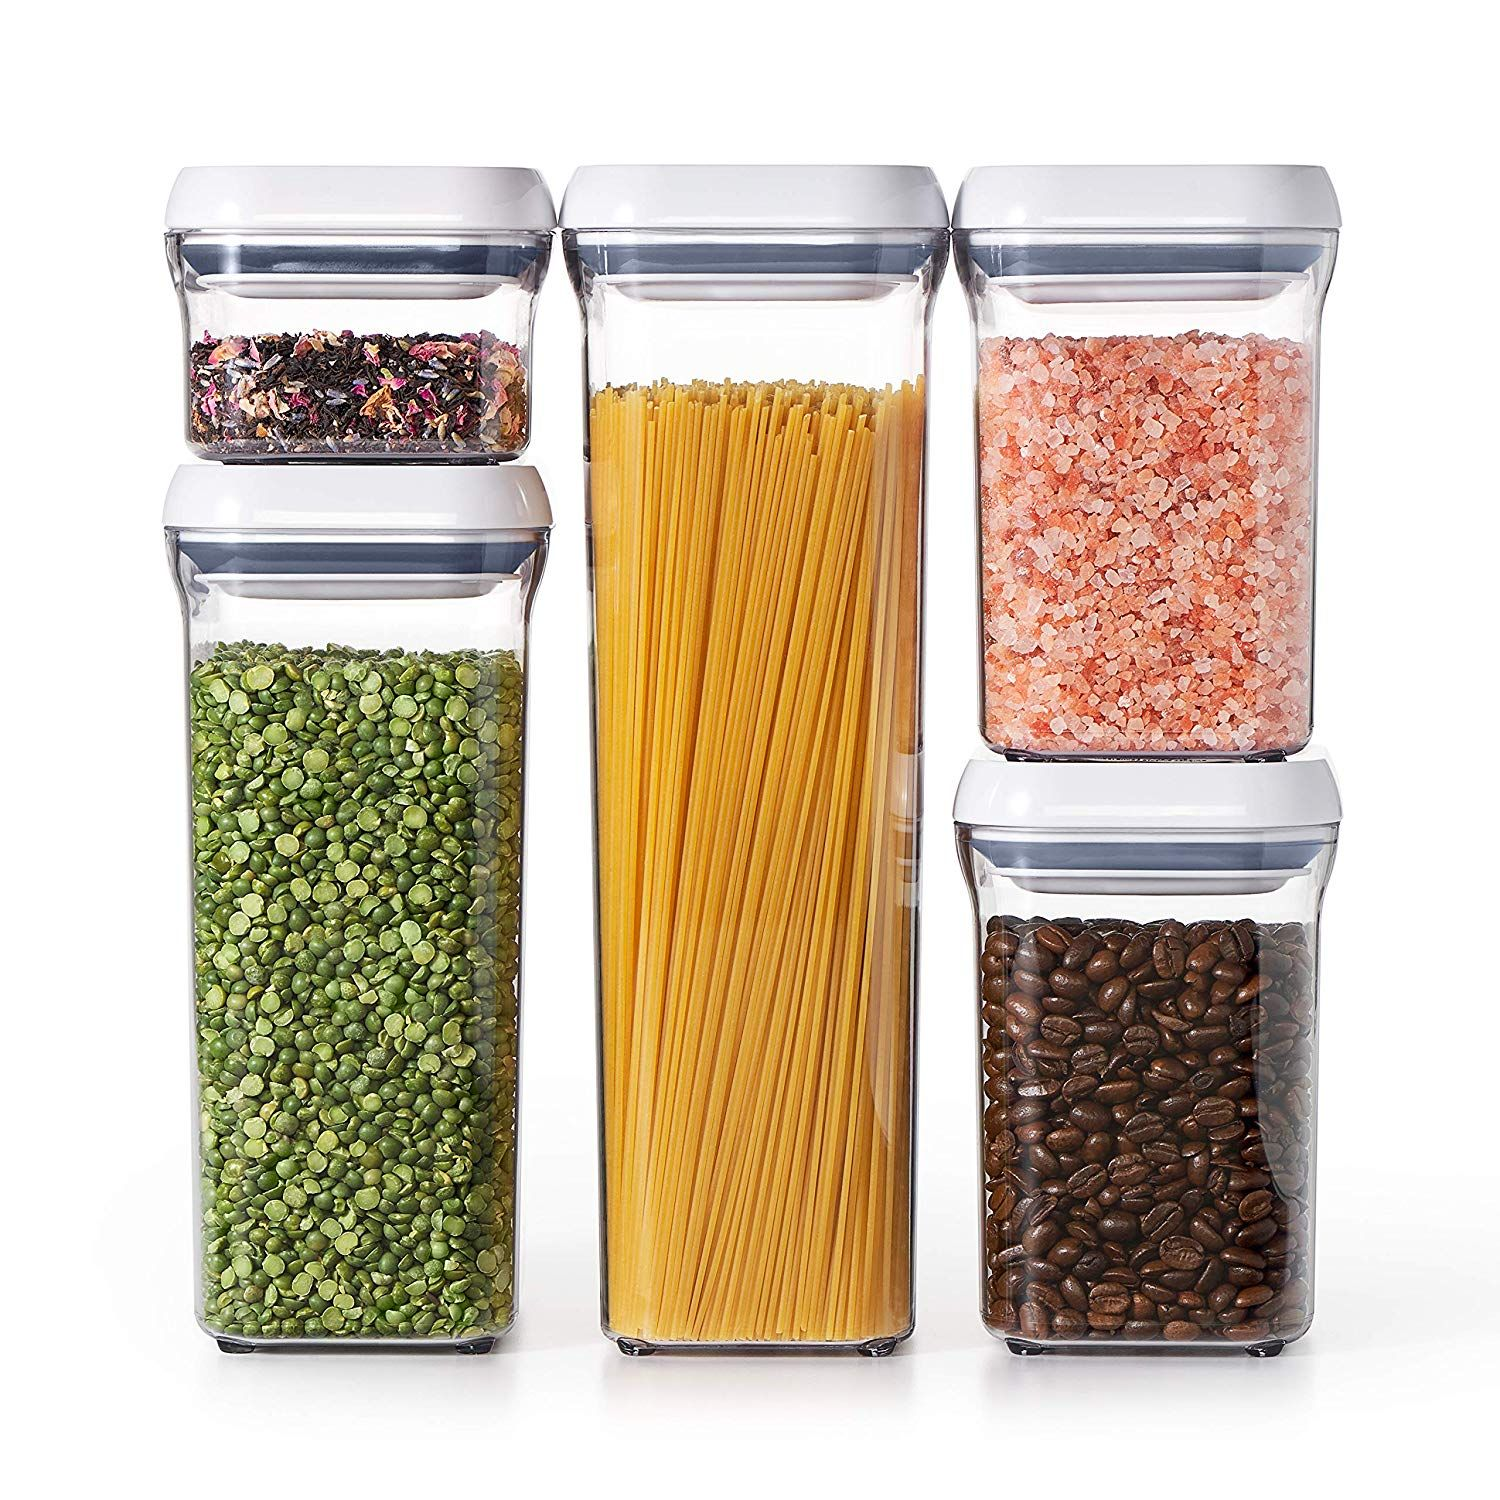 Set includes one 2.1qt Container, one 1.5qt Container